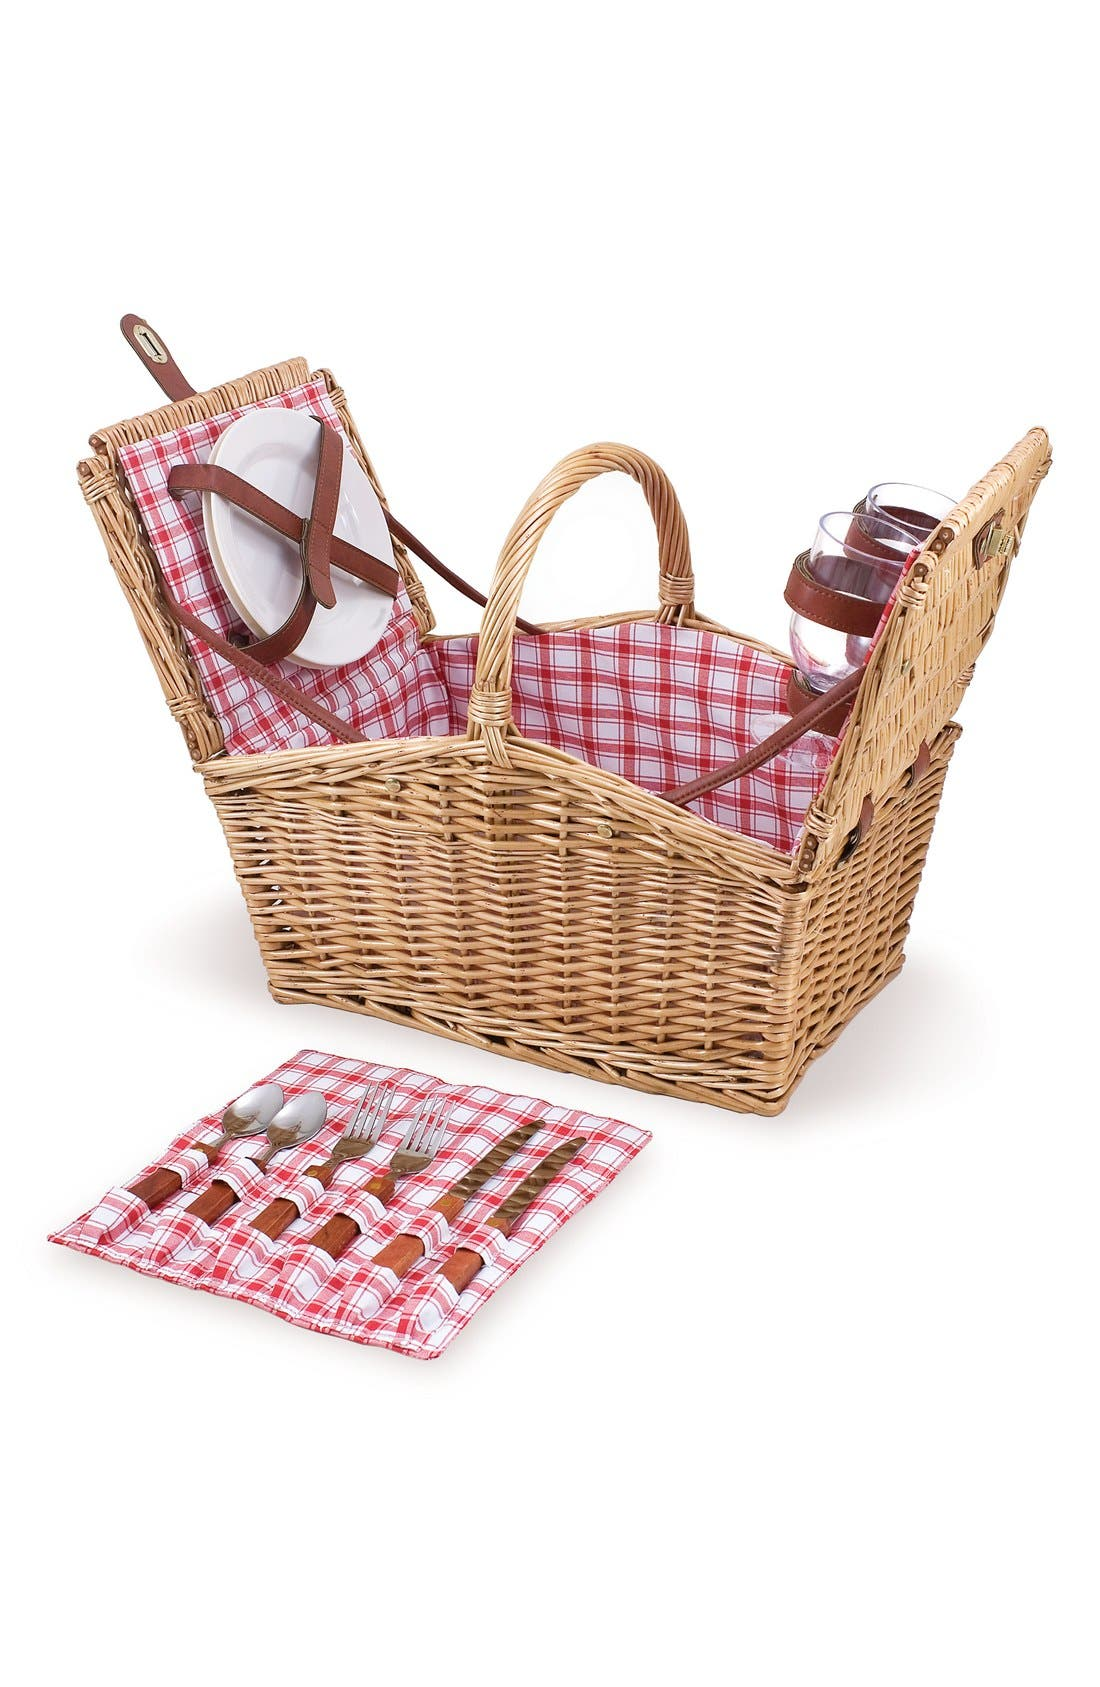 'Piccadilly' Wicker Picnic Basket,                             Main thumbnail 1, color,                             Red